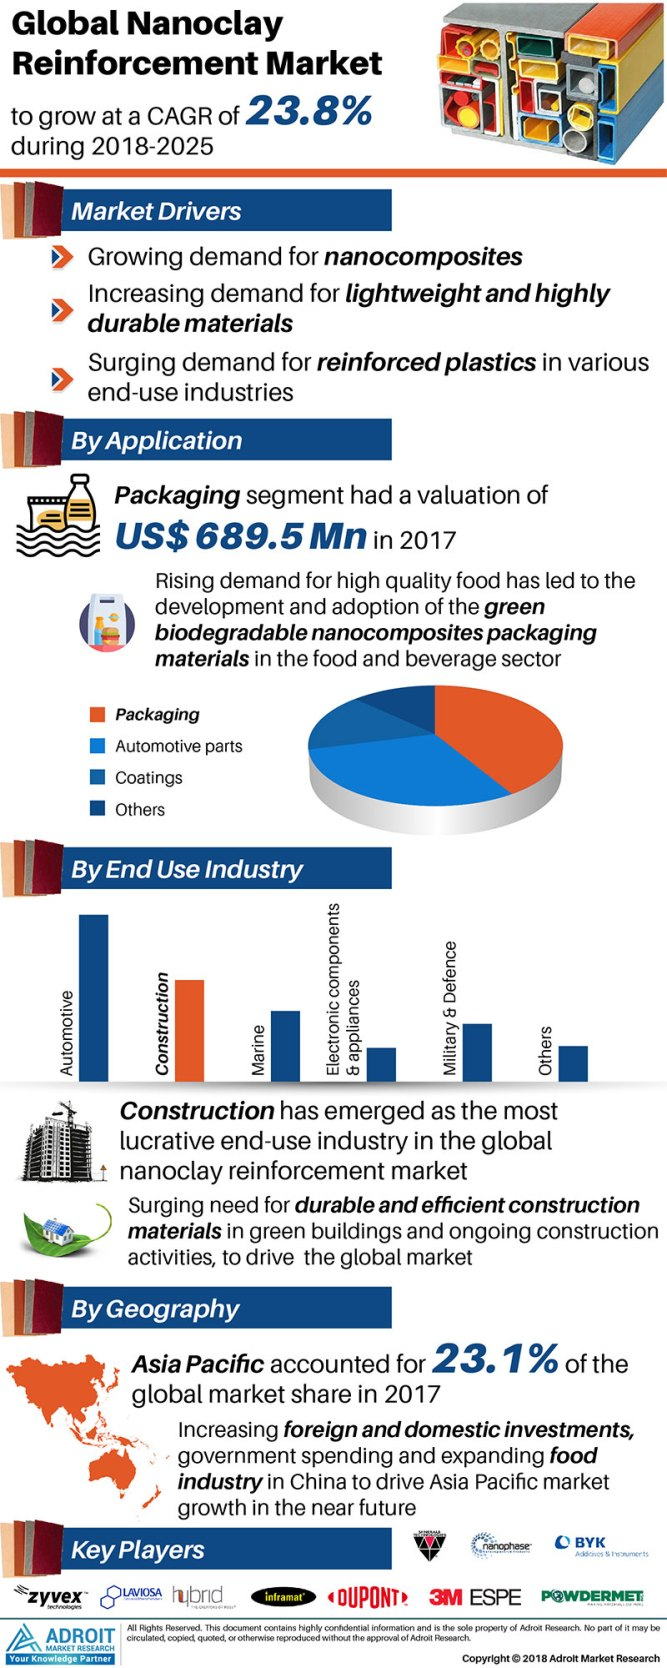 Nanoclay Reinforcement Market Rising Trends, User Demand, Drivers & Restraints, Growth Opportunities, Top Manufacturers and Global Forecast 2019-2025 1